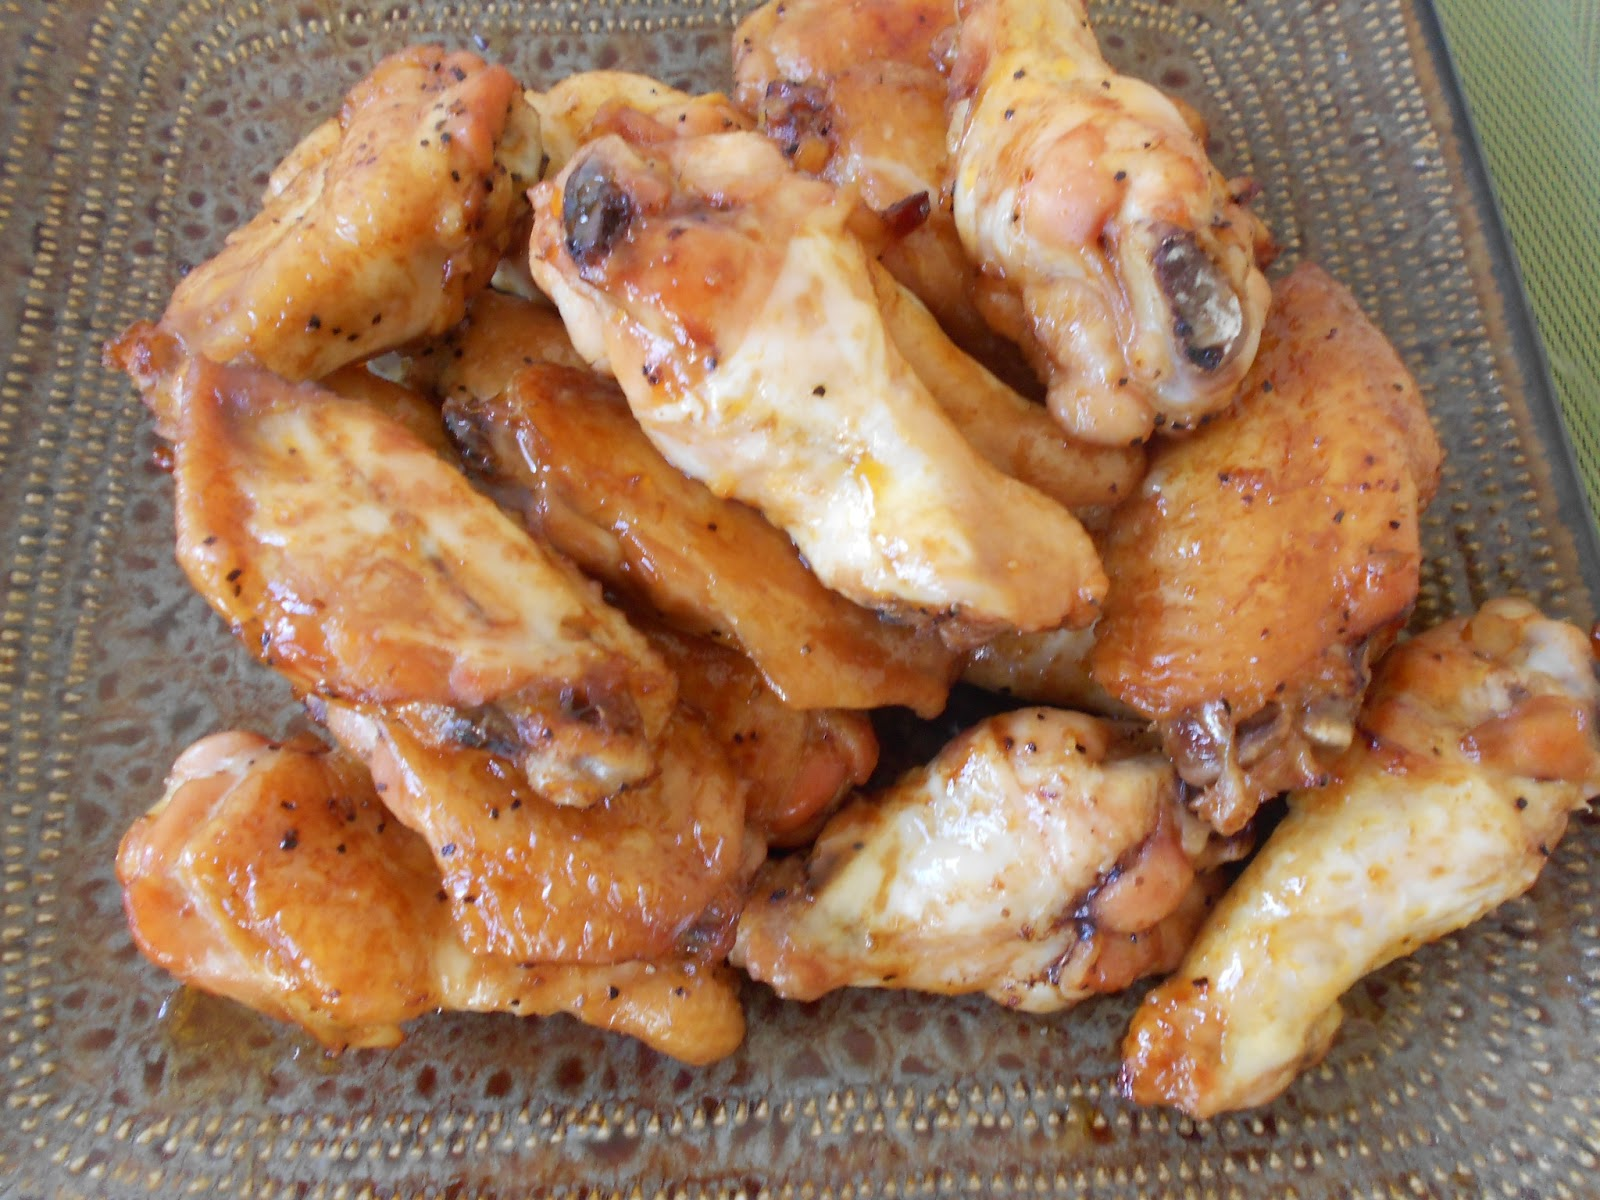 The Pub and Grub Forum: Baked Spicy Chicken Wings